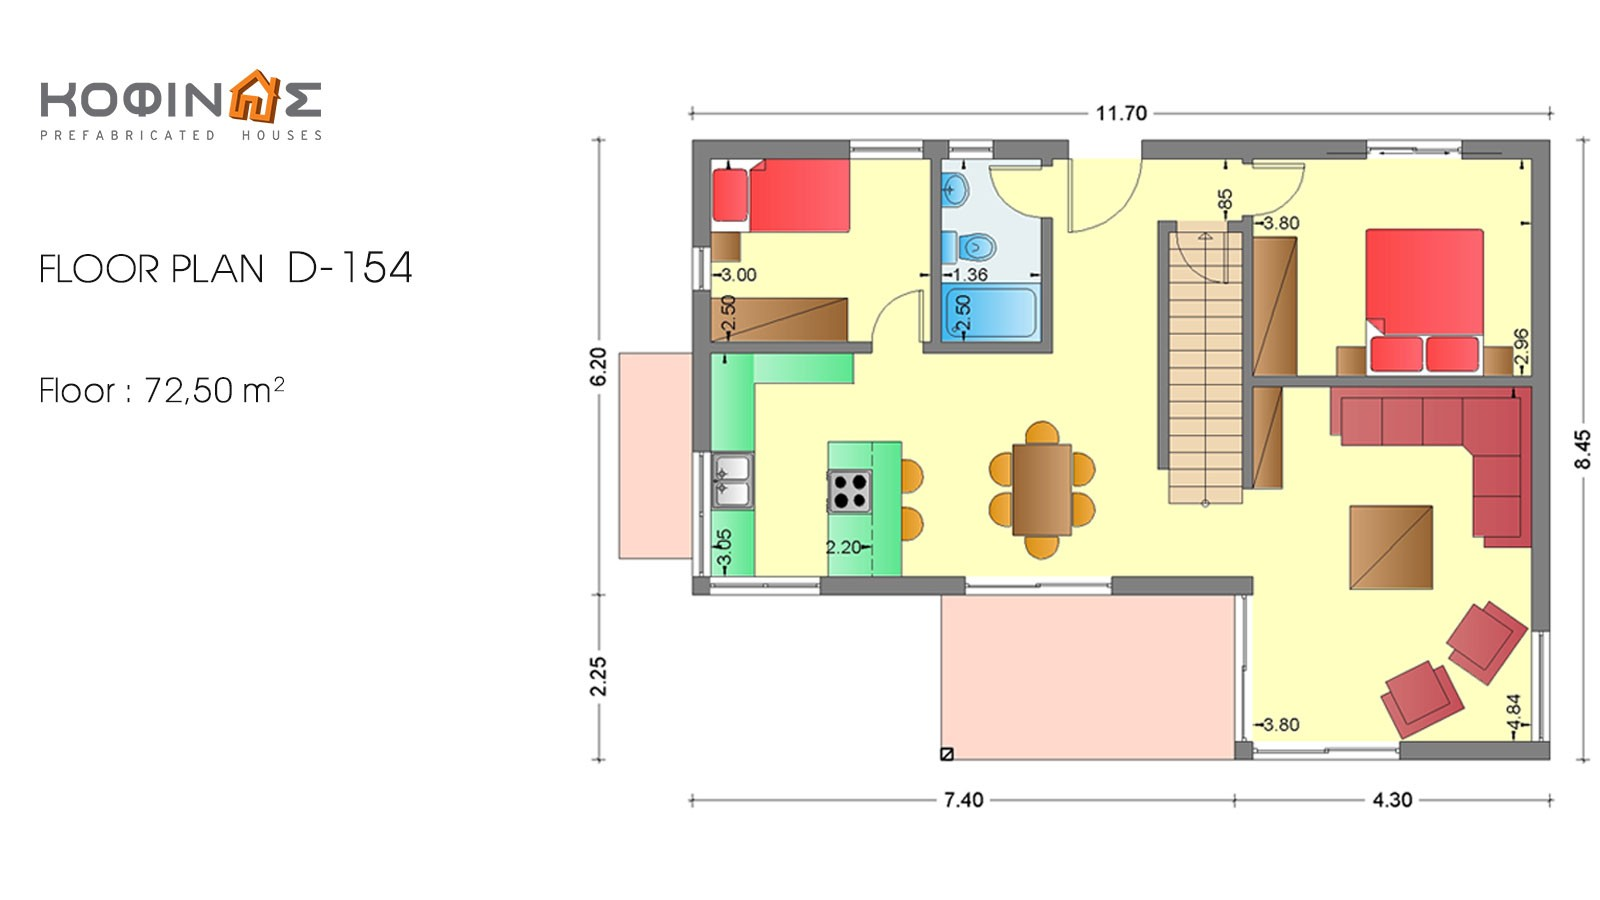 2-story house D-154, habitable space of 154,70 m²